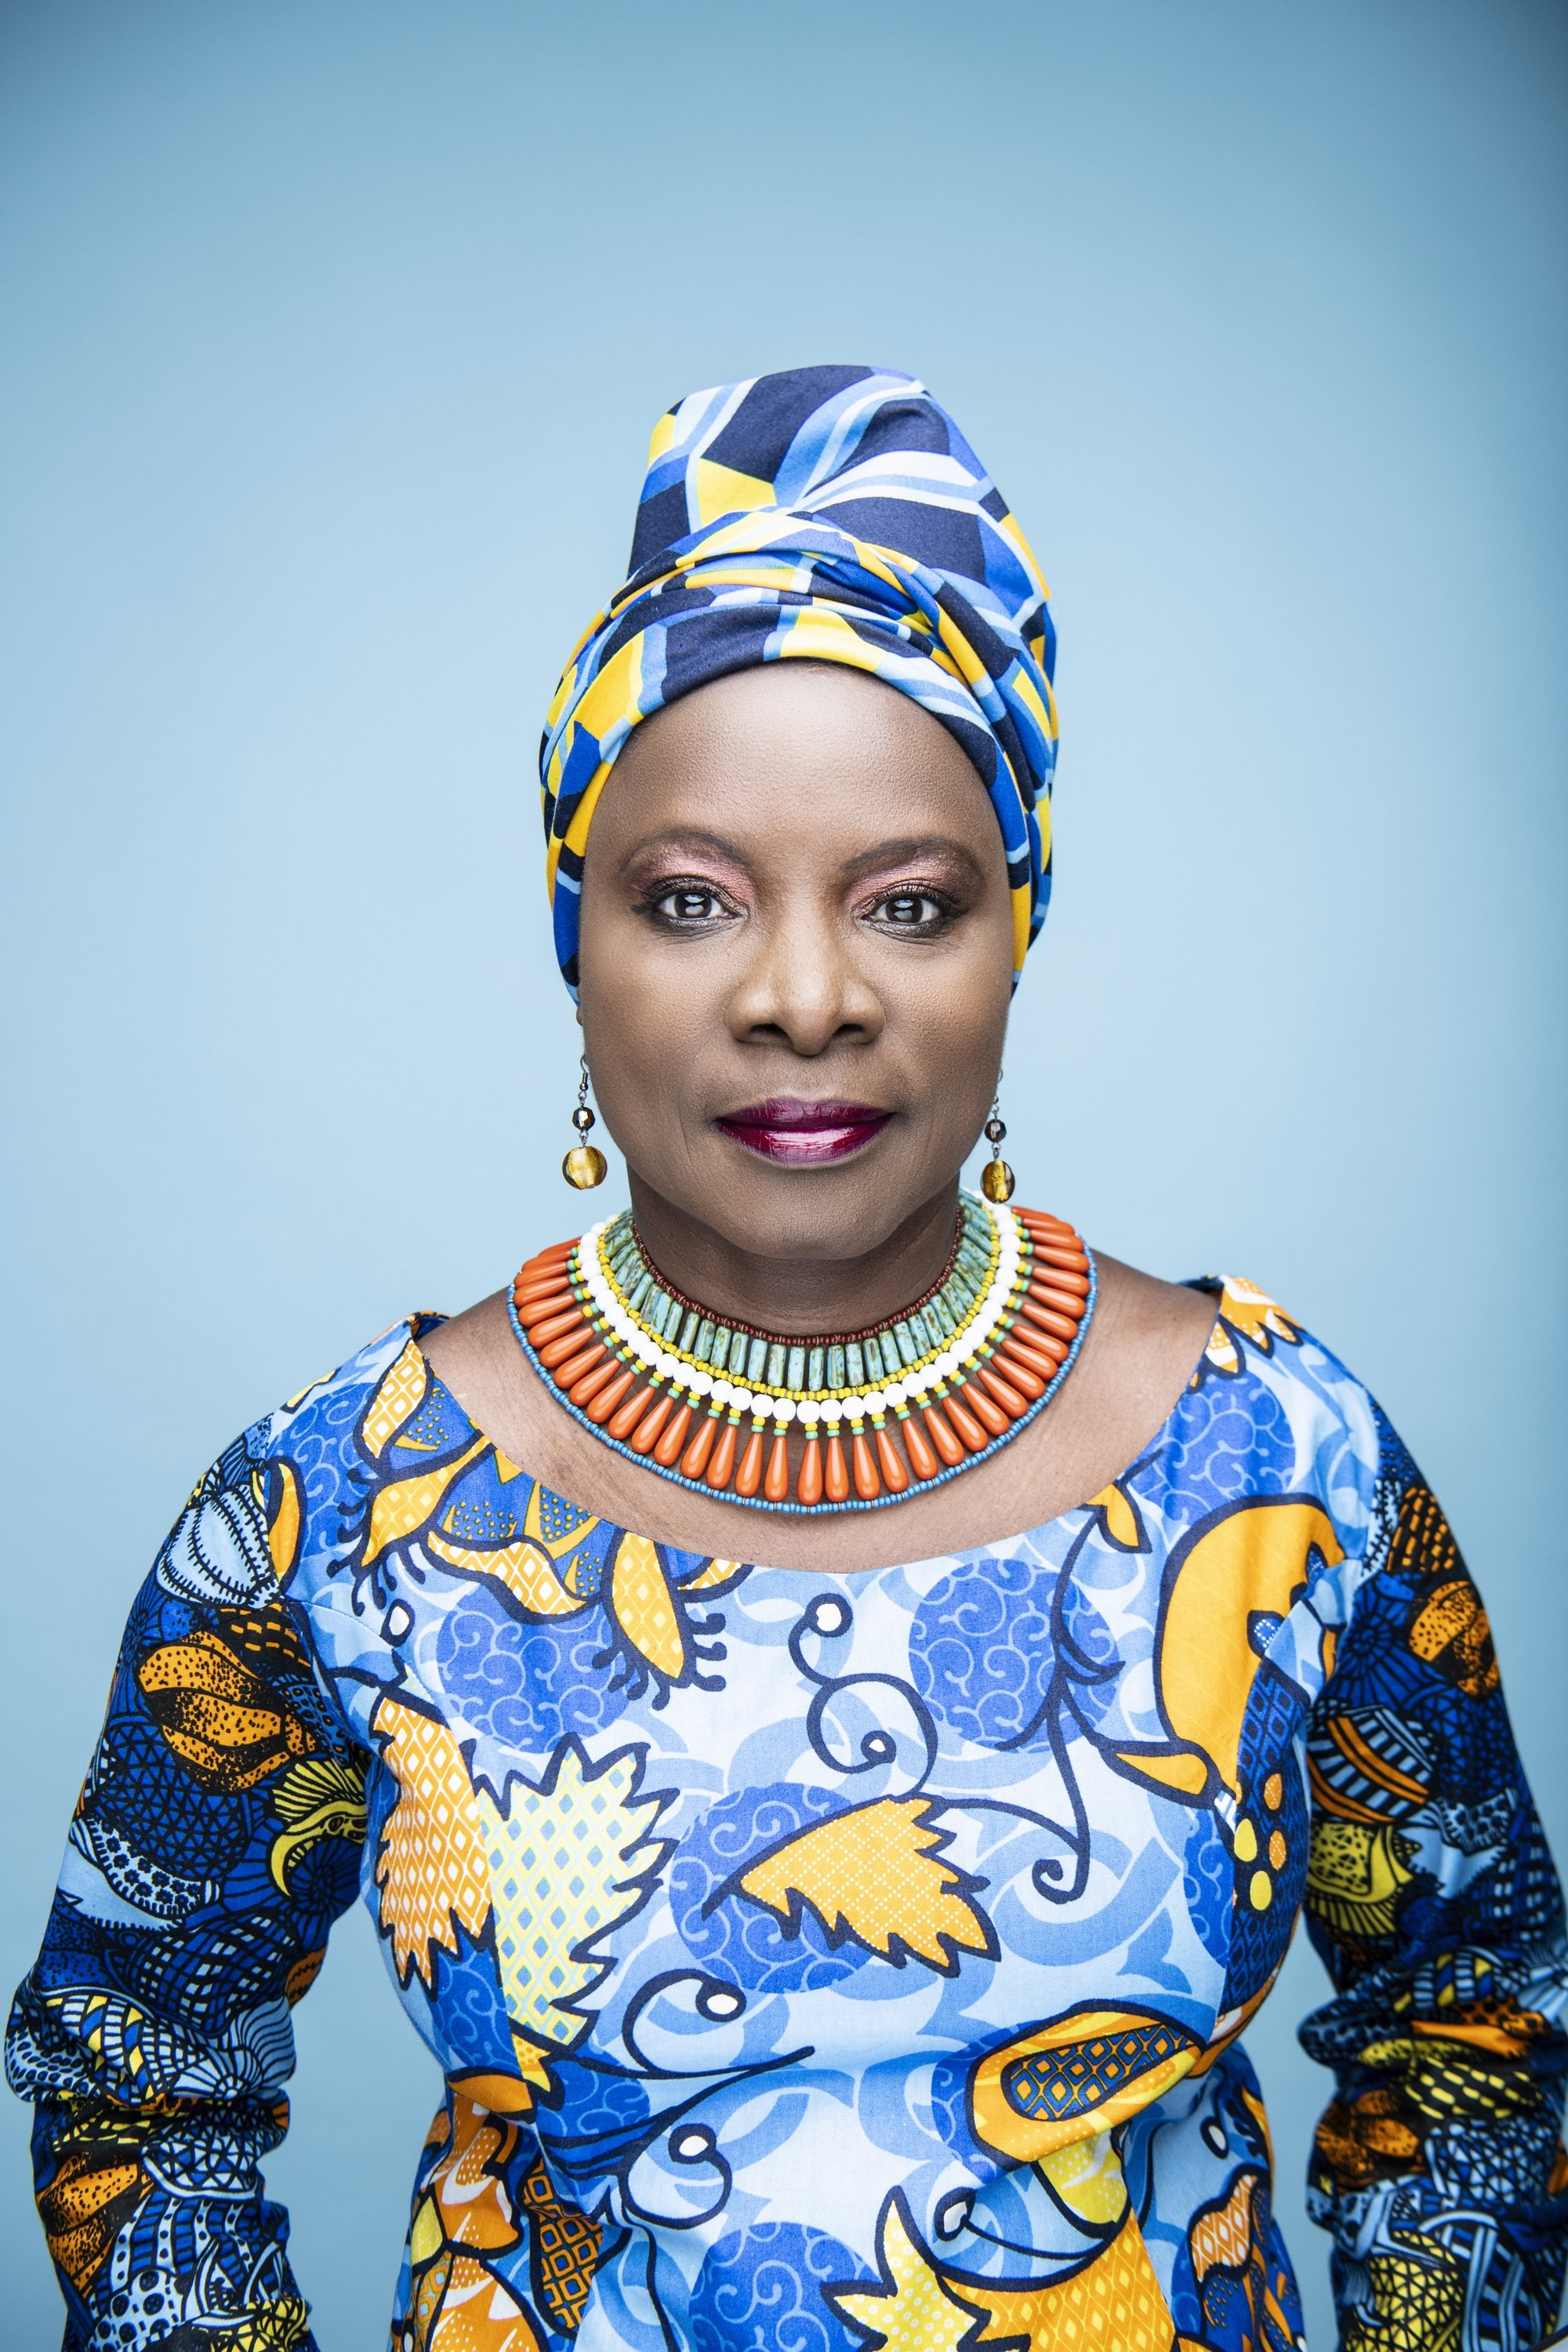 Angelique Kidjo's concert will be held at The Marmara Esma Sultan Mansion on Sept. 6.